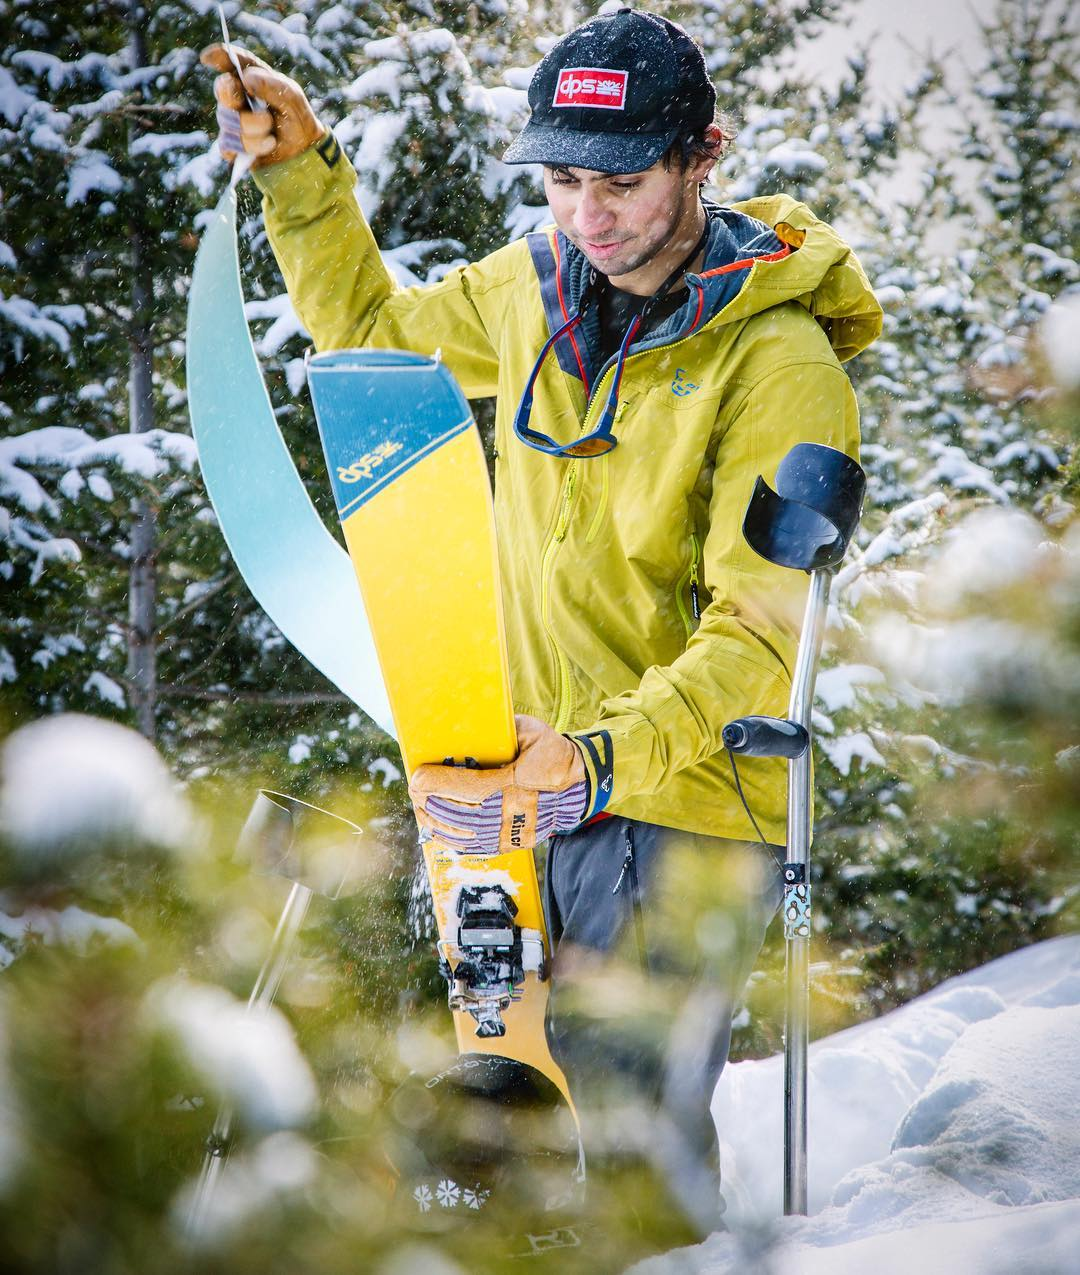 Direct from our newly assembled Alaskan Kit, is the Garage Patch Cap—perfect for big-mountain adventures, or in-town shenanigans. Follow the link in our bio and shop one today. Photo: @seth_langbauer Skier: @vasu_sojitra